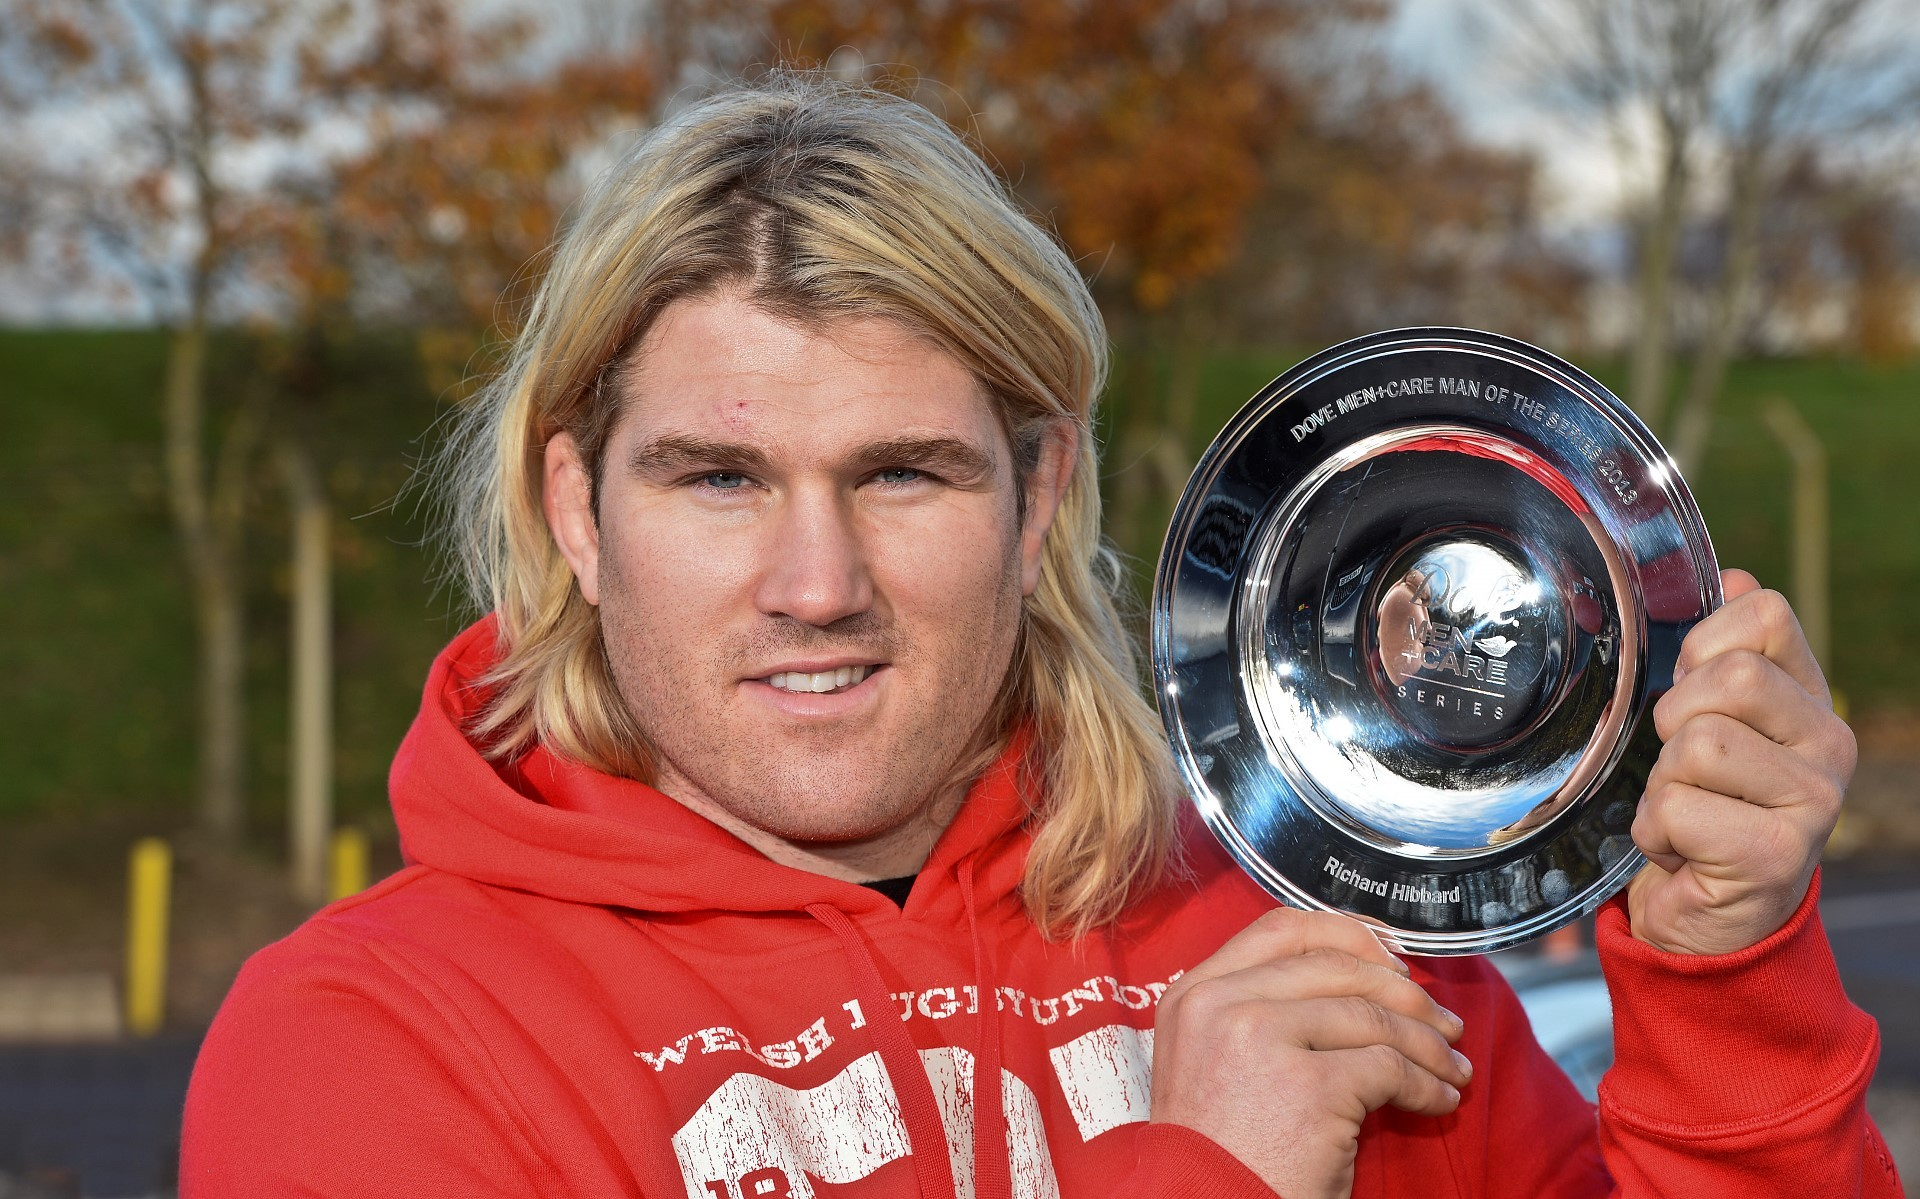 WINNER: Richard Hibbard with his man of the series trophy